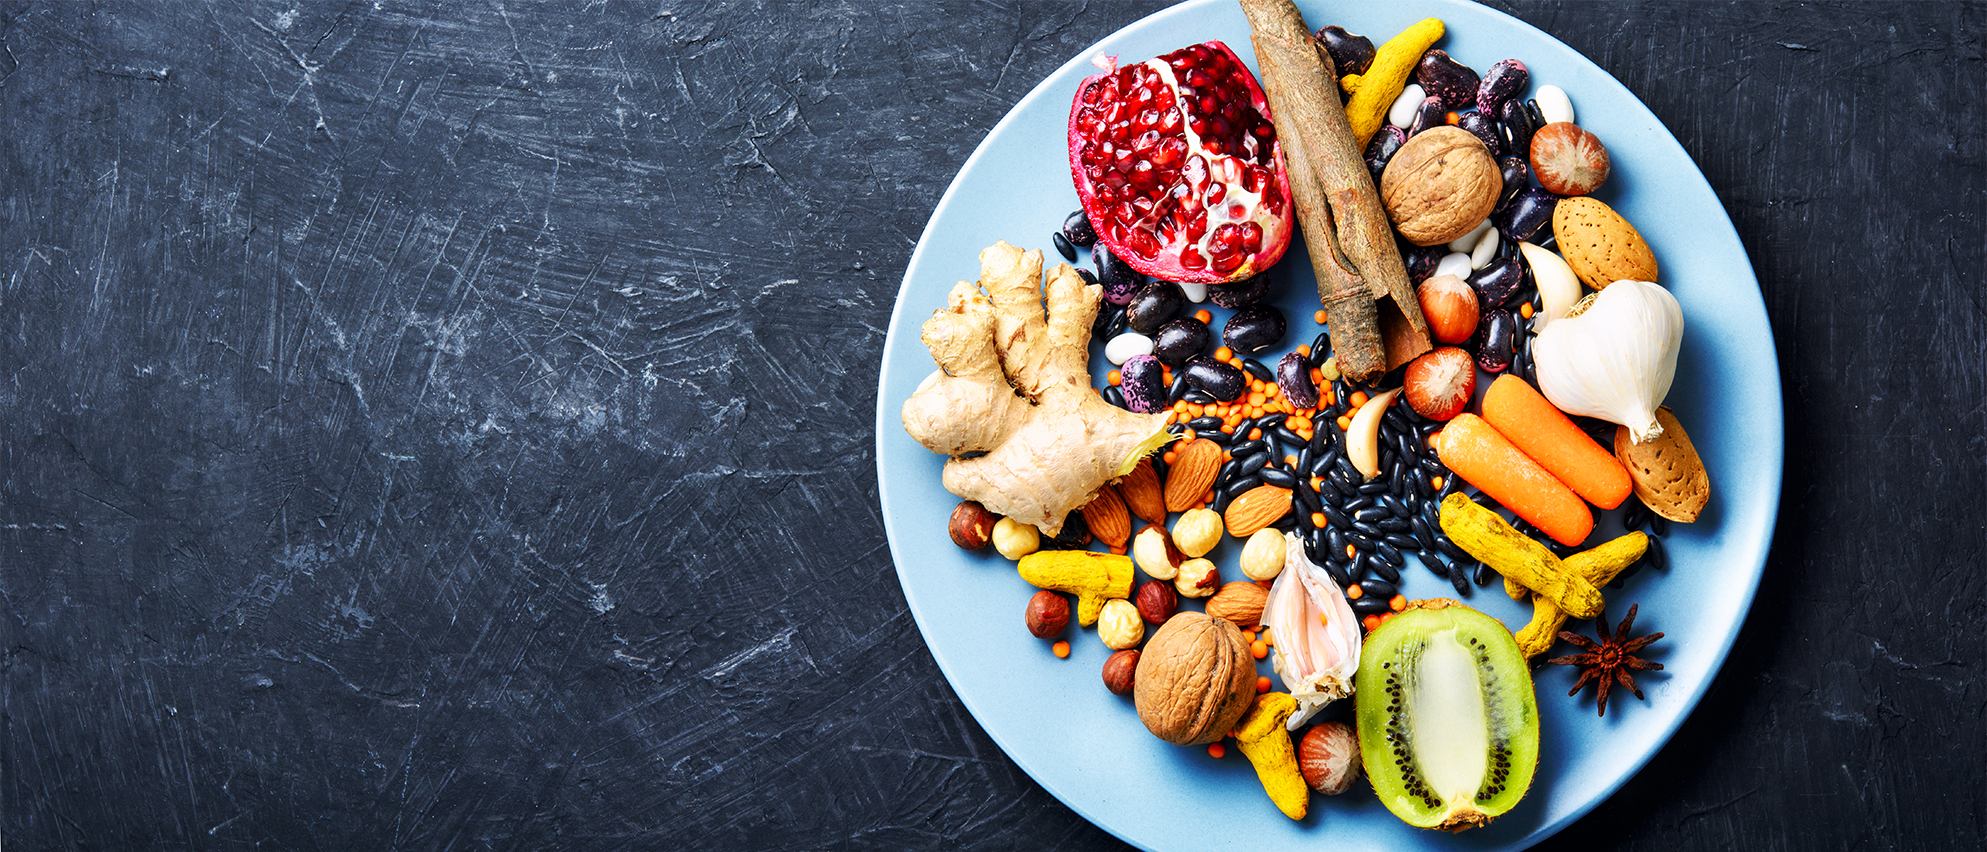 Nutrition fruit weight loss coach